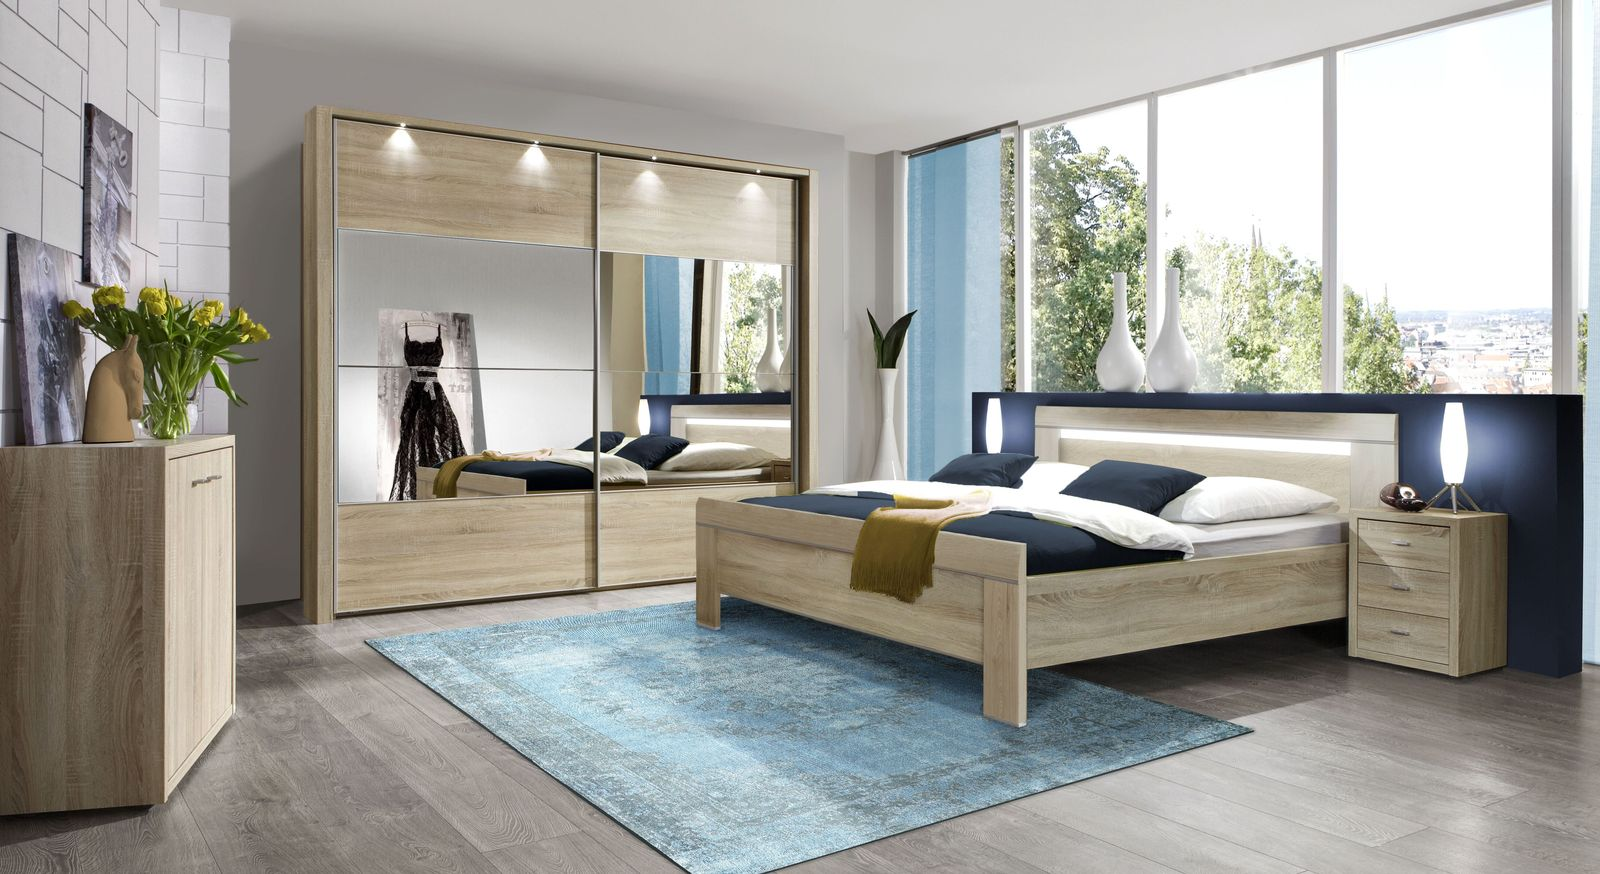 schrank kommode in eiche s gerau dekor mit 2 dreht ren seymour. Black Bedroom Furniture Sets. Home Design Ideas